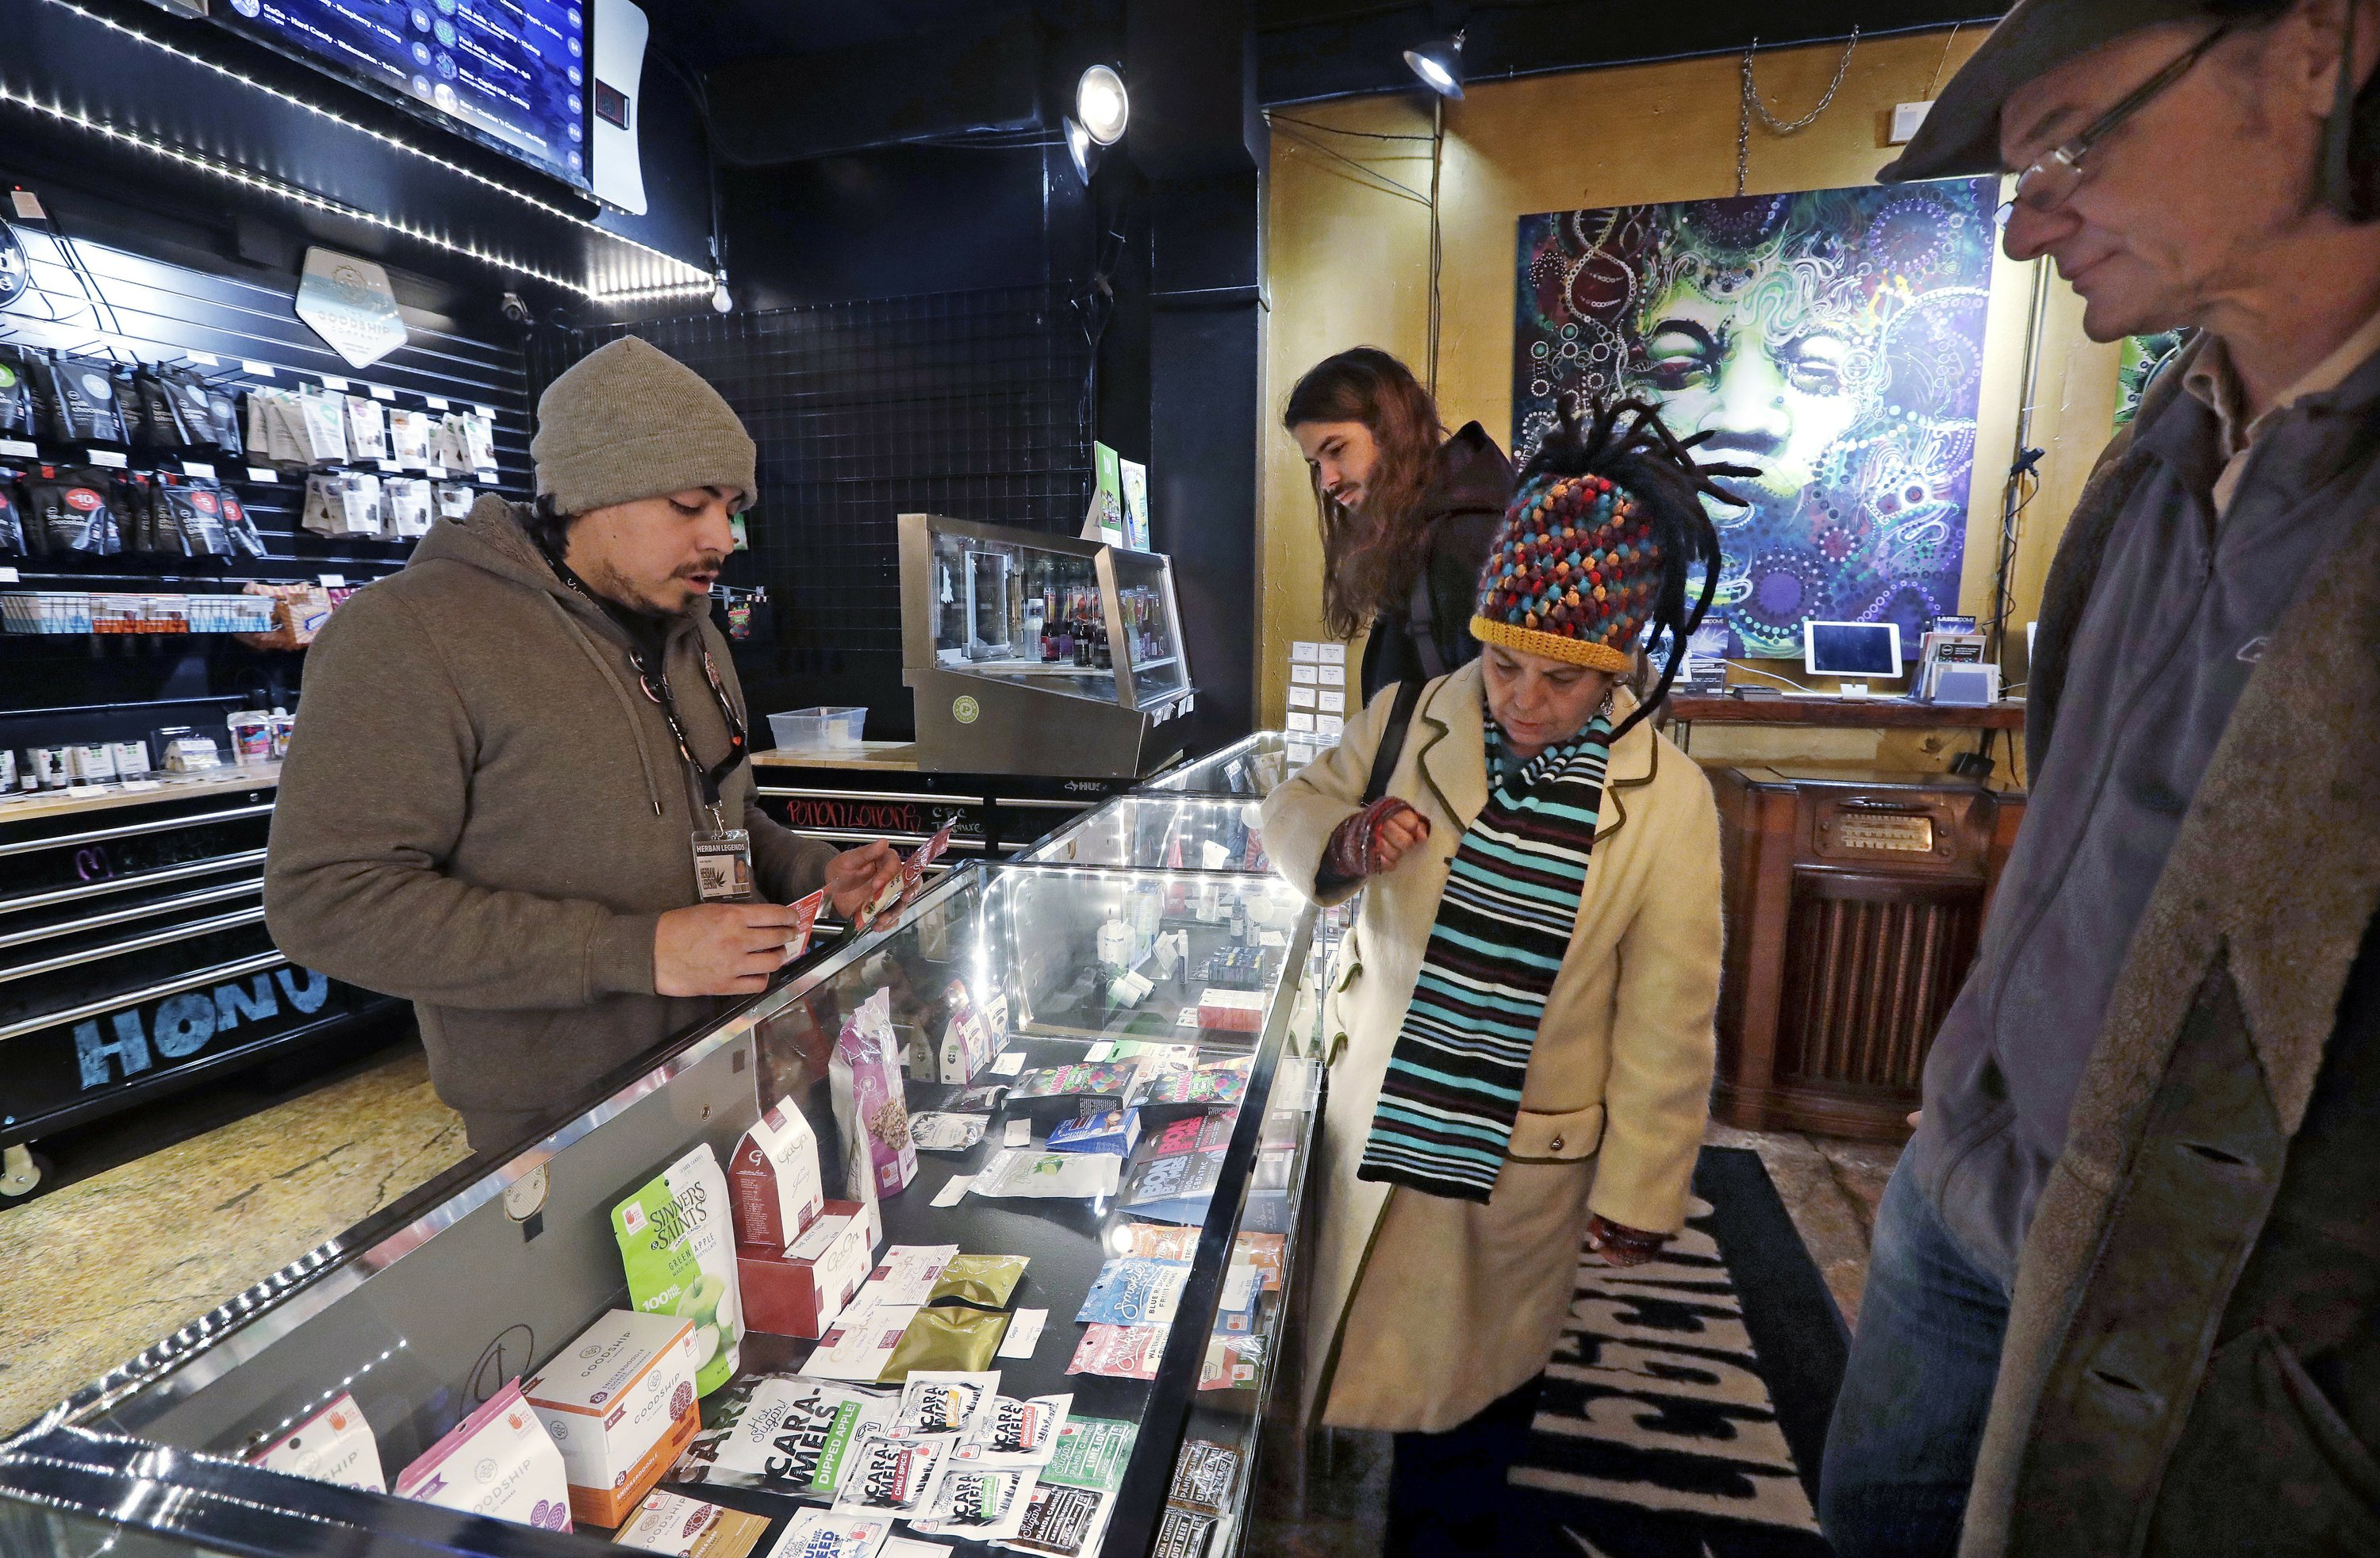 post-image-5 years in, Washington considers overhaul of pot regulation